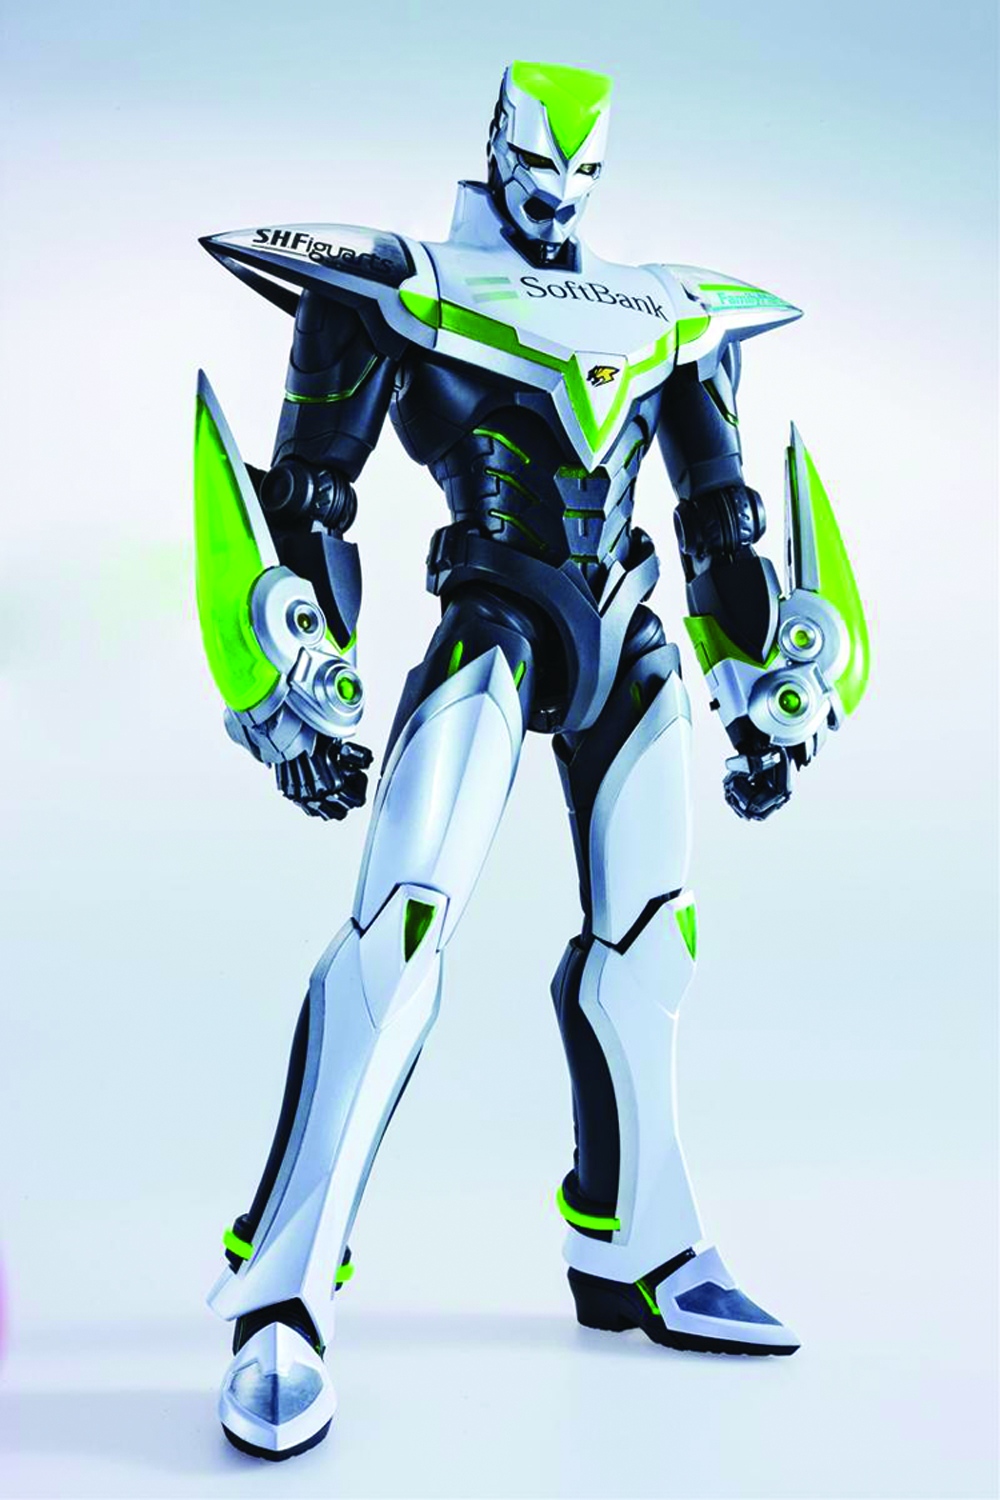 TIGER & BUNNY WILD TIGER 12IN PM